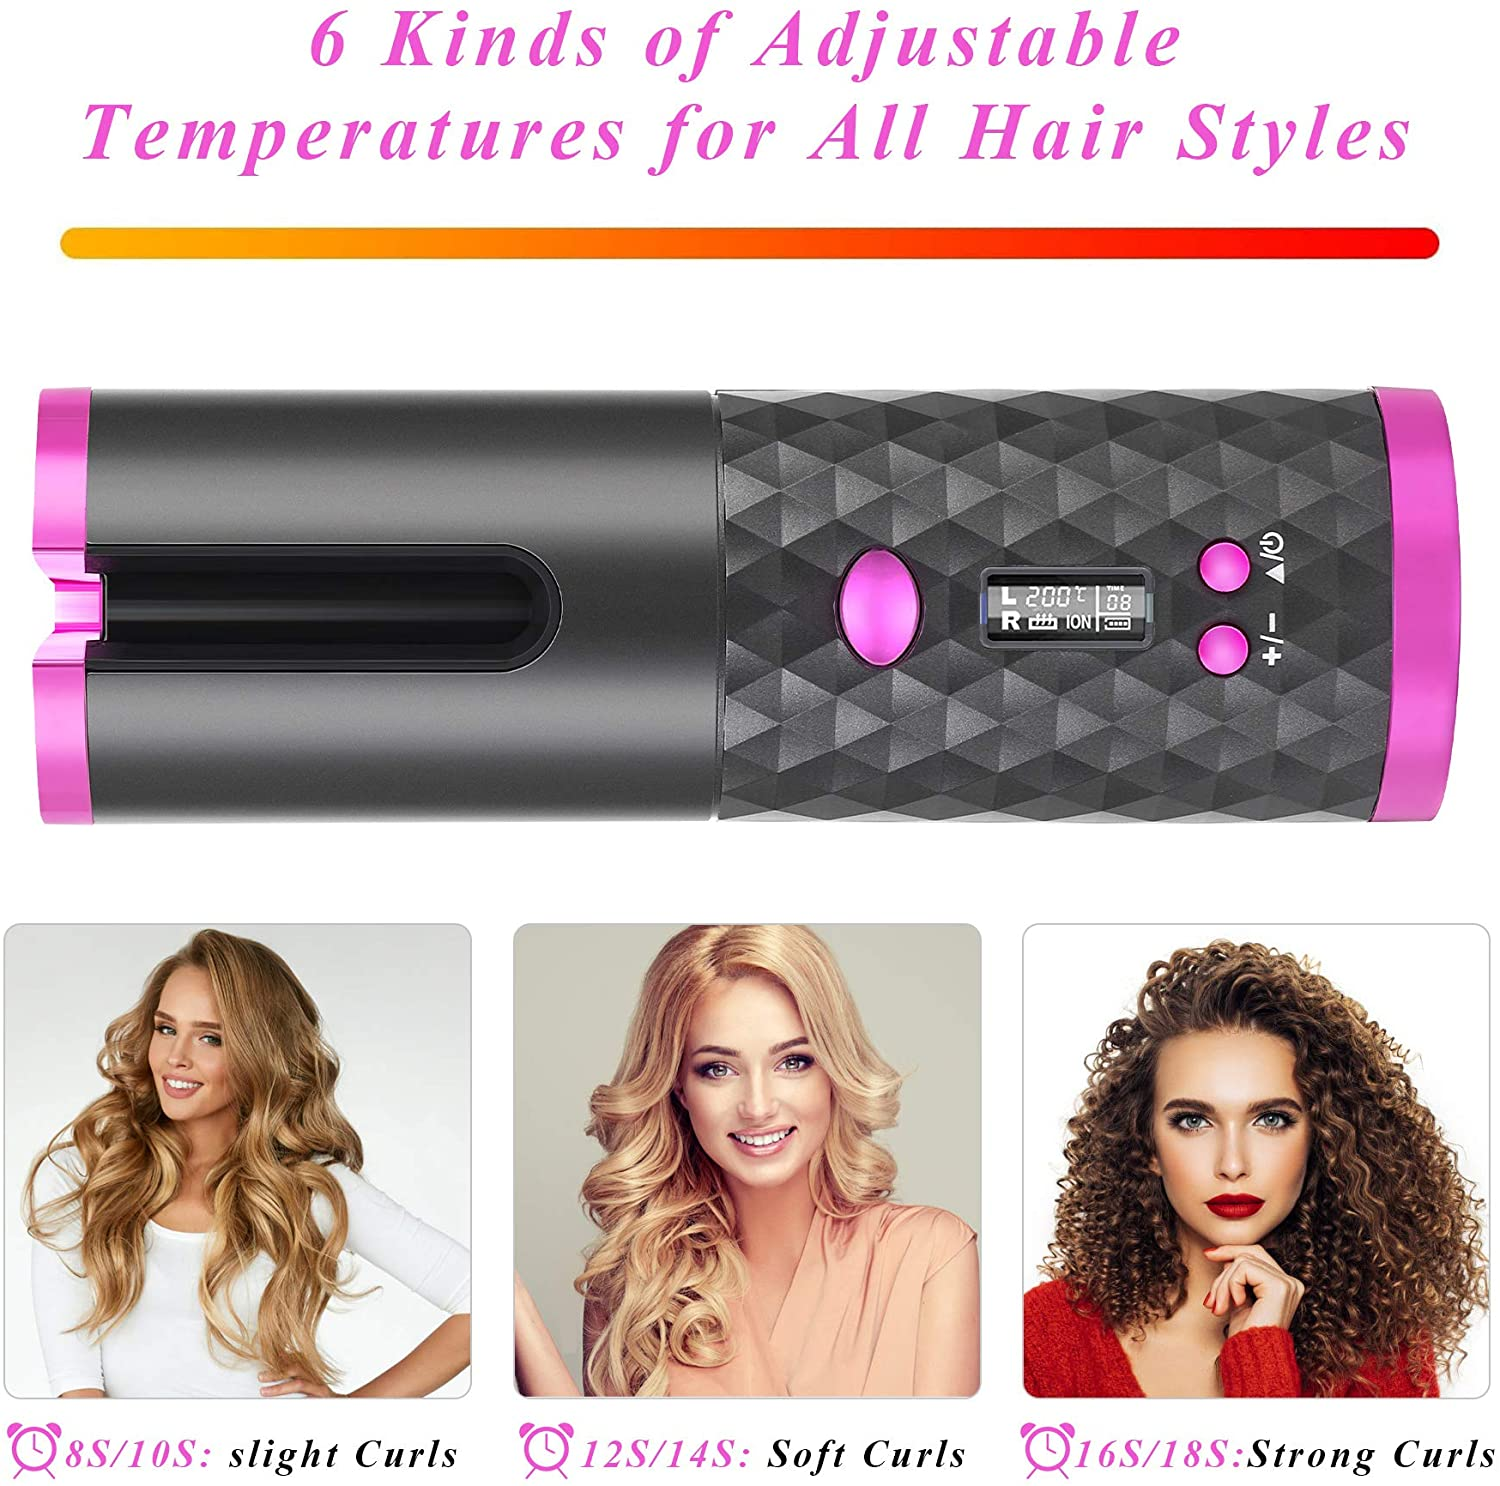 Spartose™ World's First Wireless Automated Curling Iron 2020!